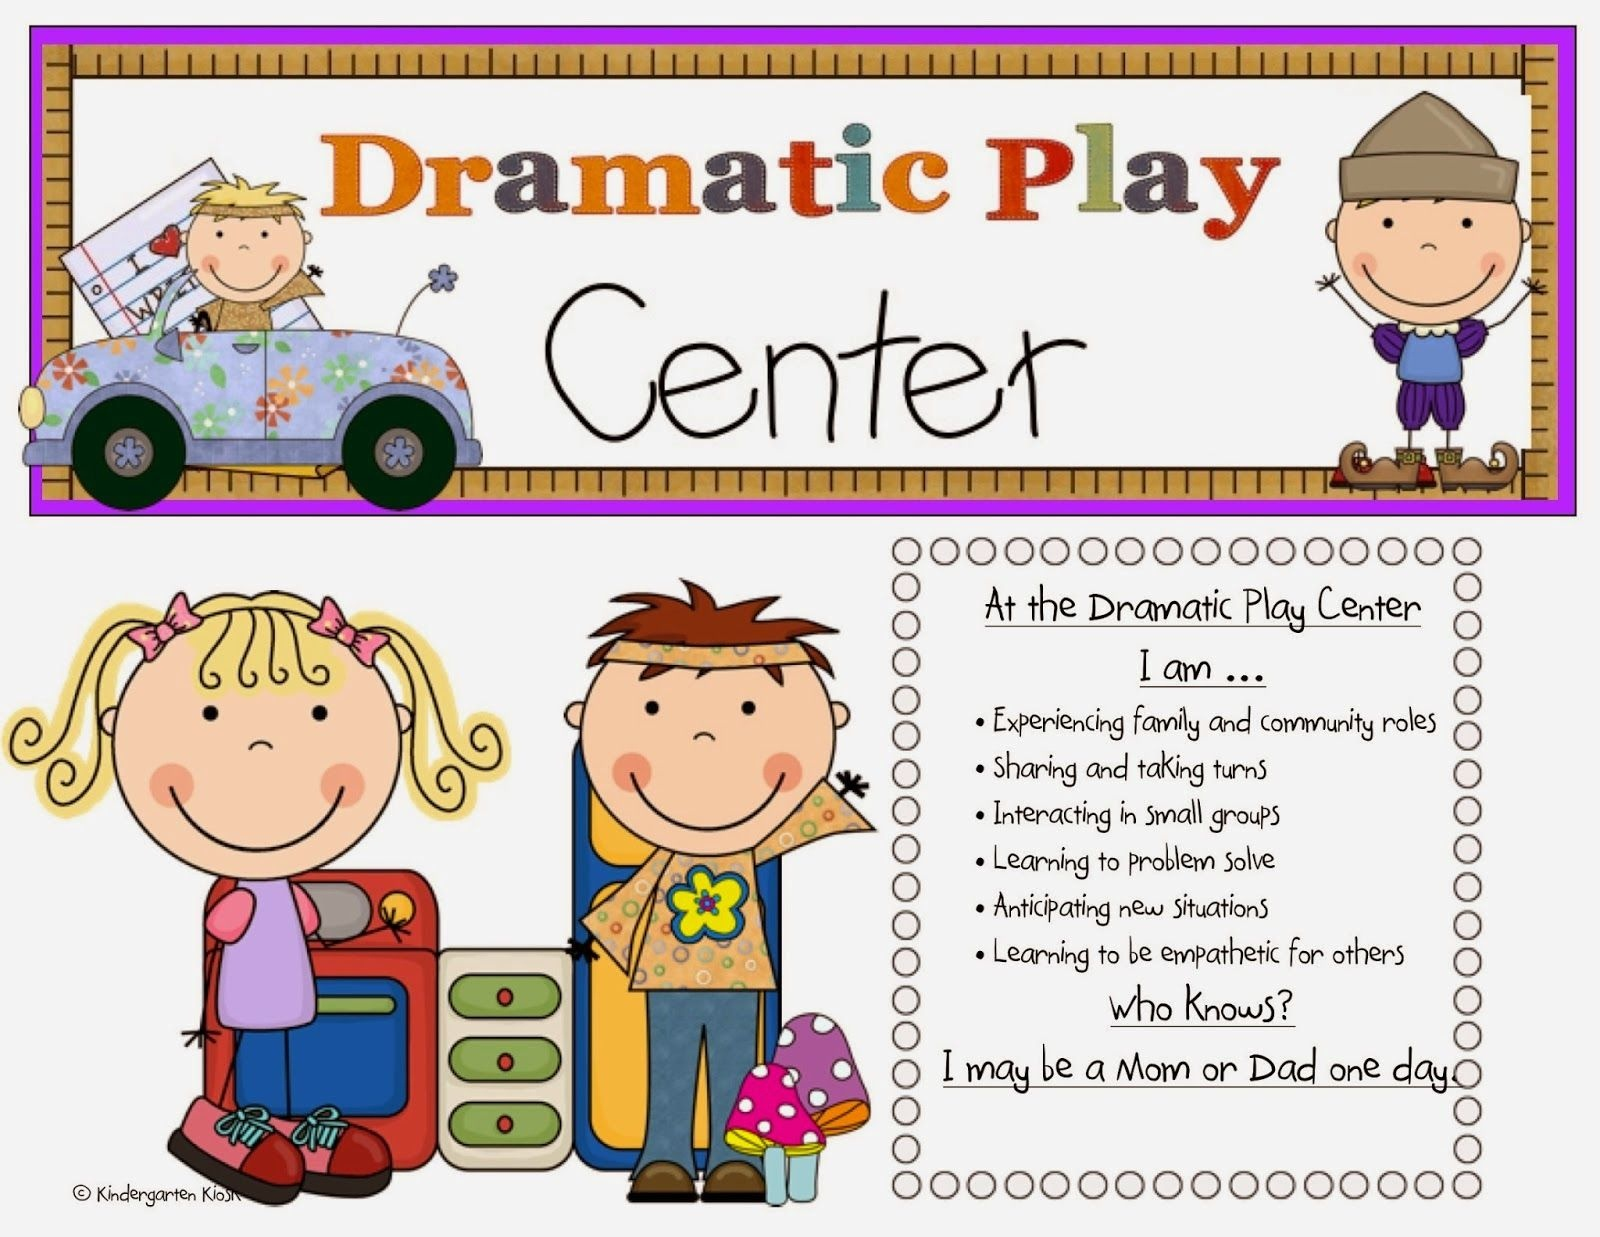 Meeting Common Core Standards Through Dramatic Play | School Stuff - Free Printable Learning Center Signs